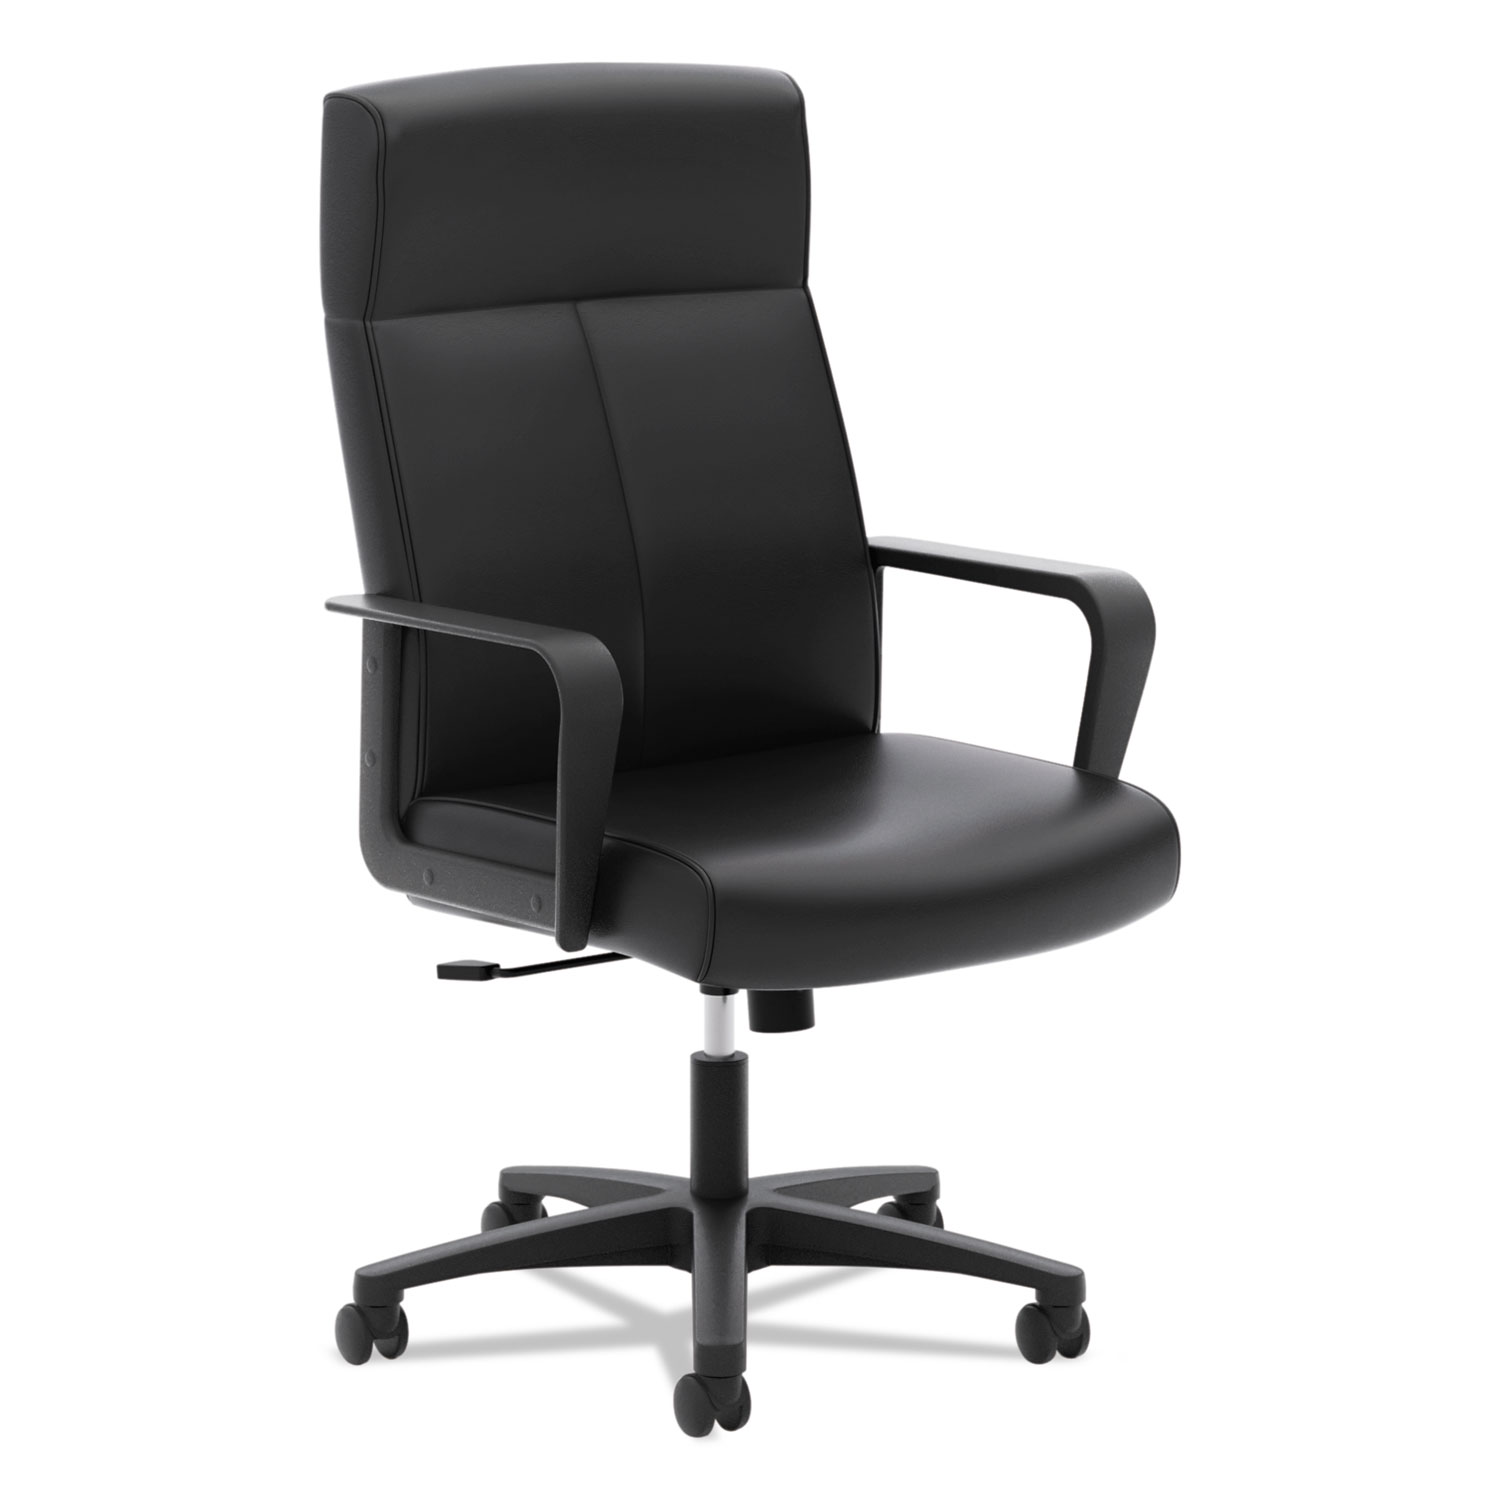 Fantastic Hvl604 High Back Executive Chair Supports Up To 250 Lbs Dailytribune Chair Design For Home Dailytribuneorg